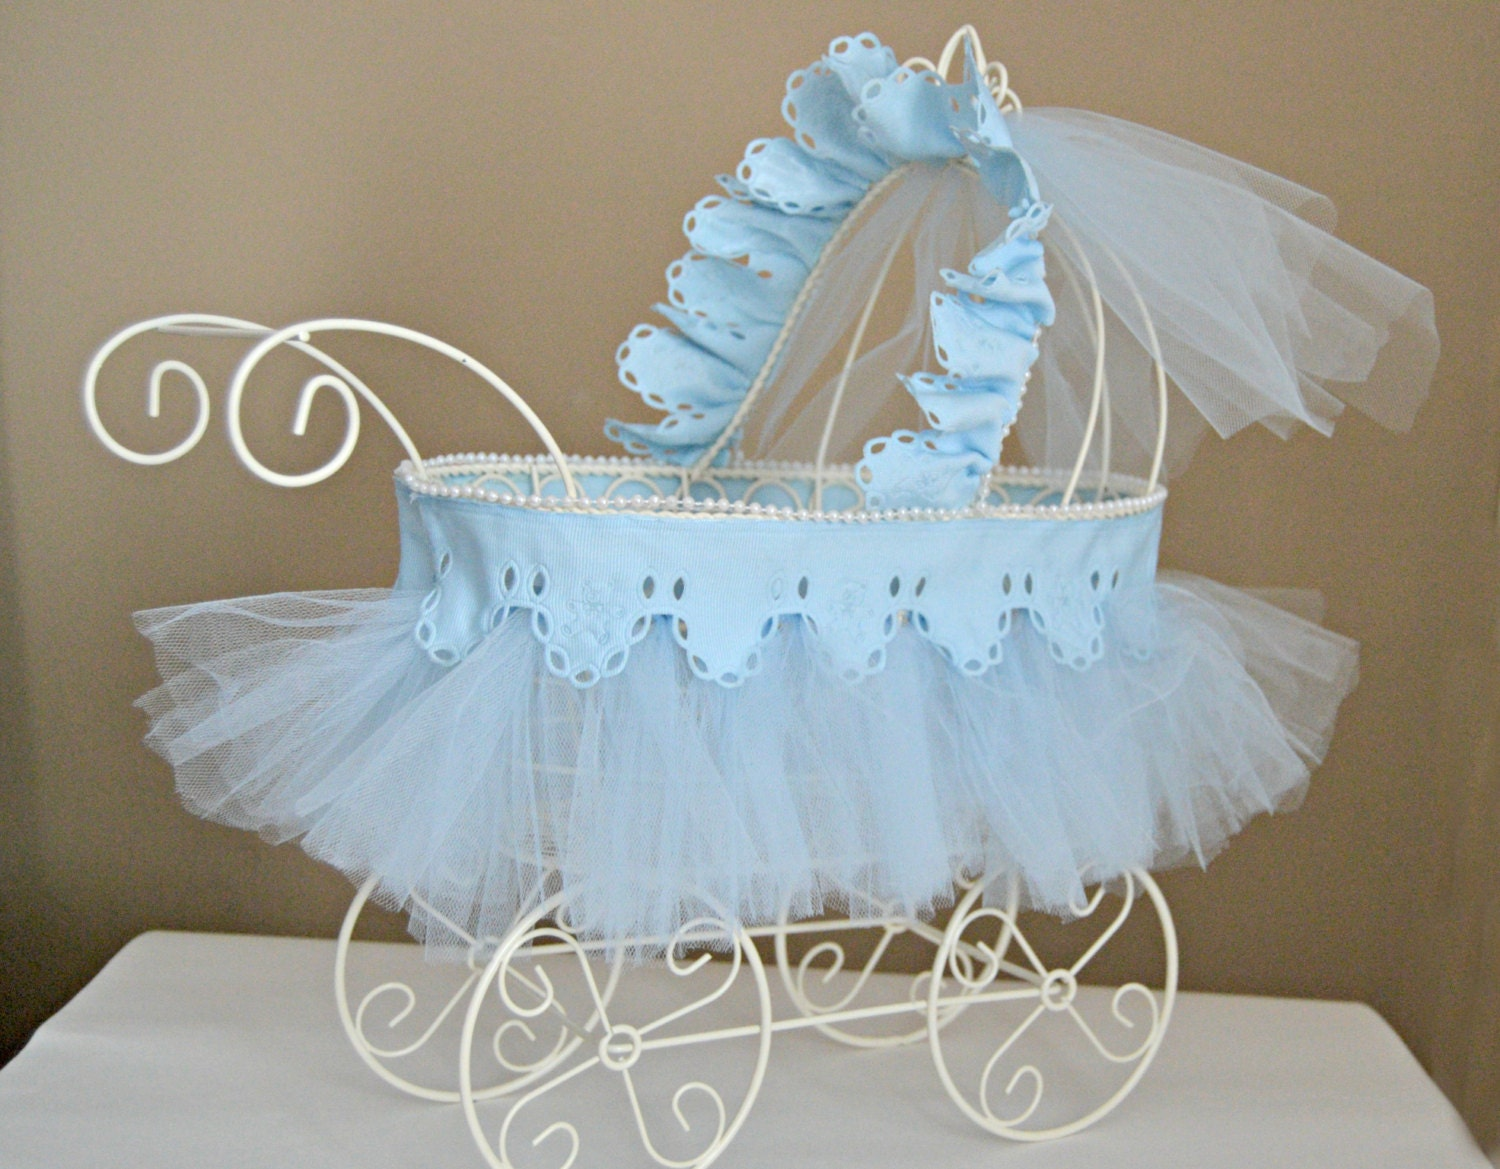 Baby carriage nursery decor shower centerpiece vintage